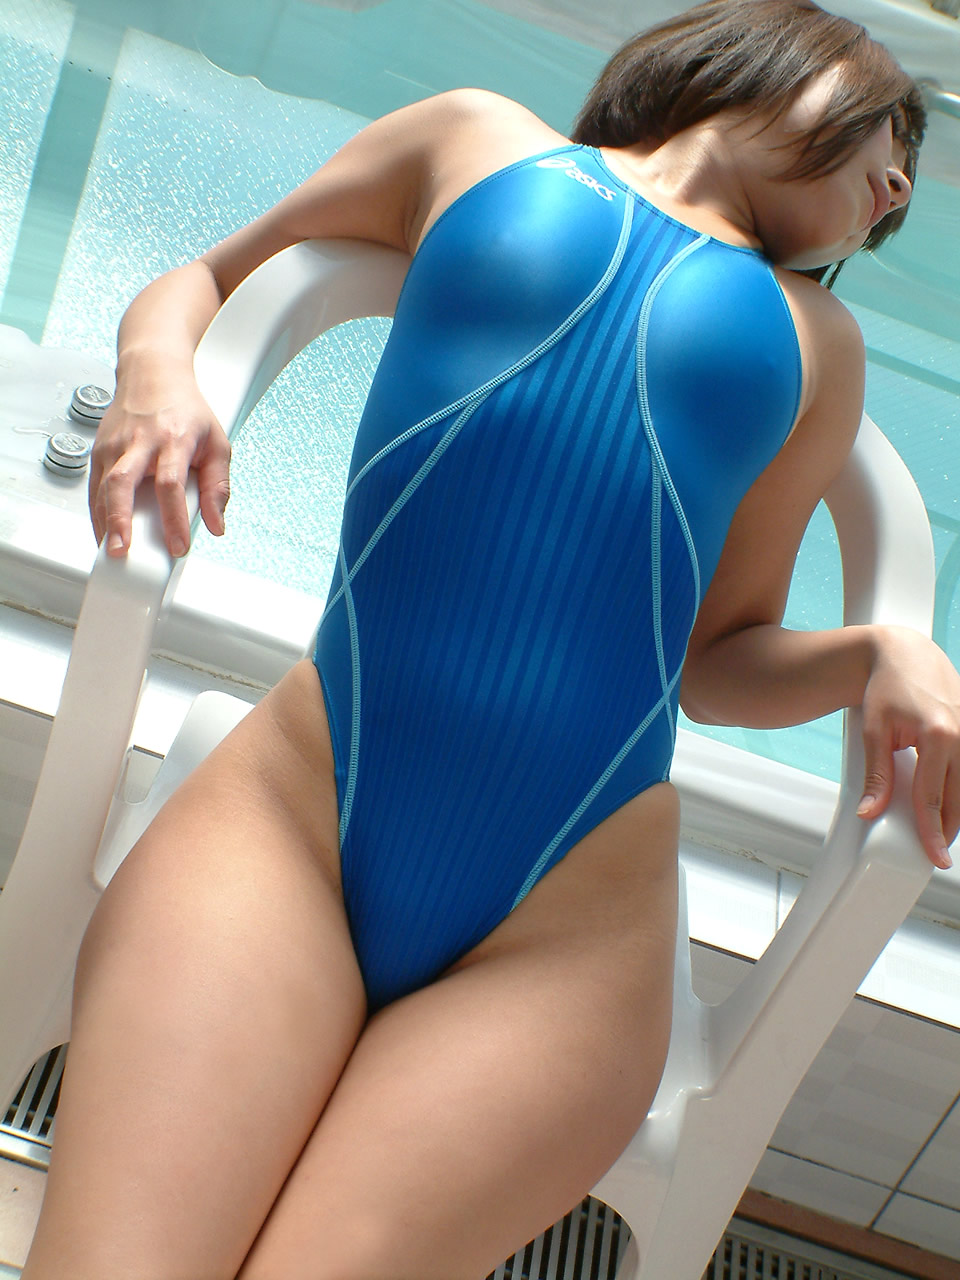 Swimwear porn galleries hardcore tube